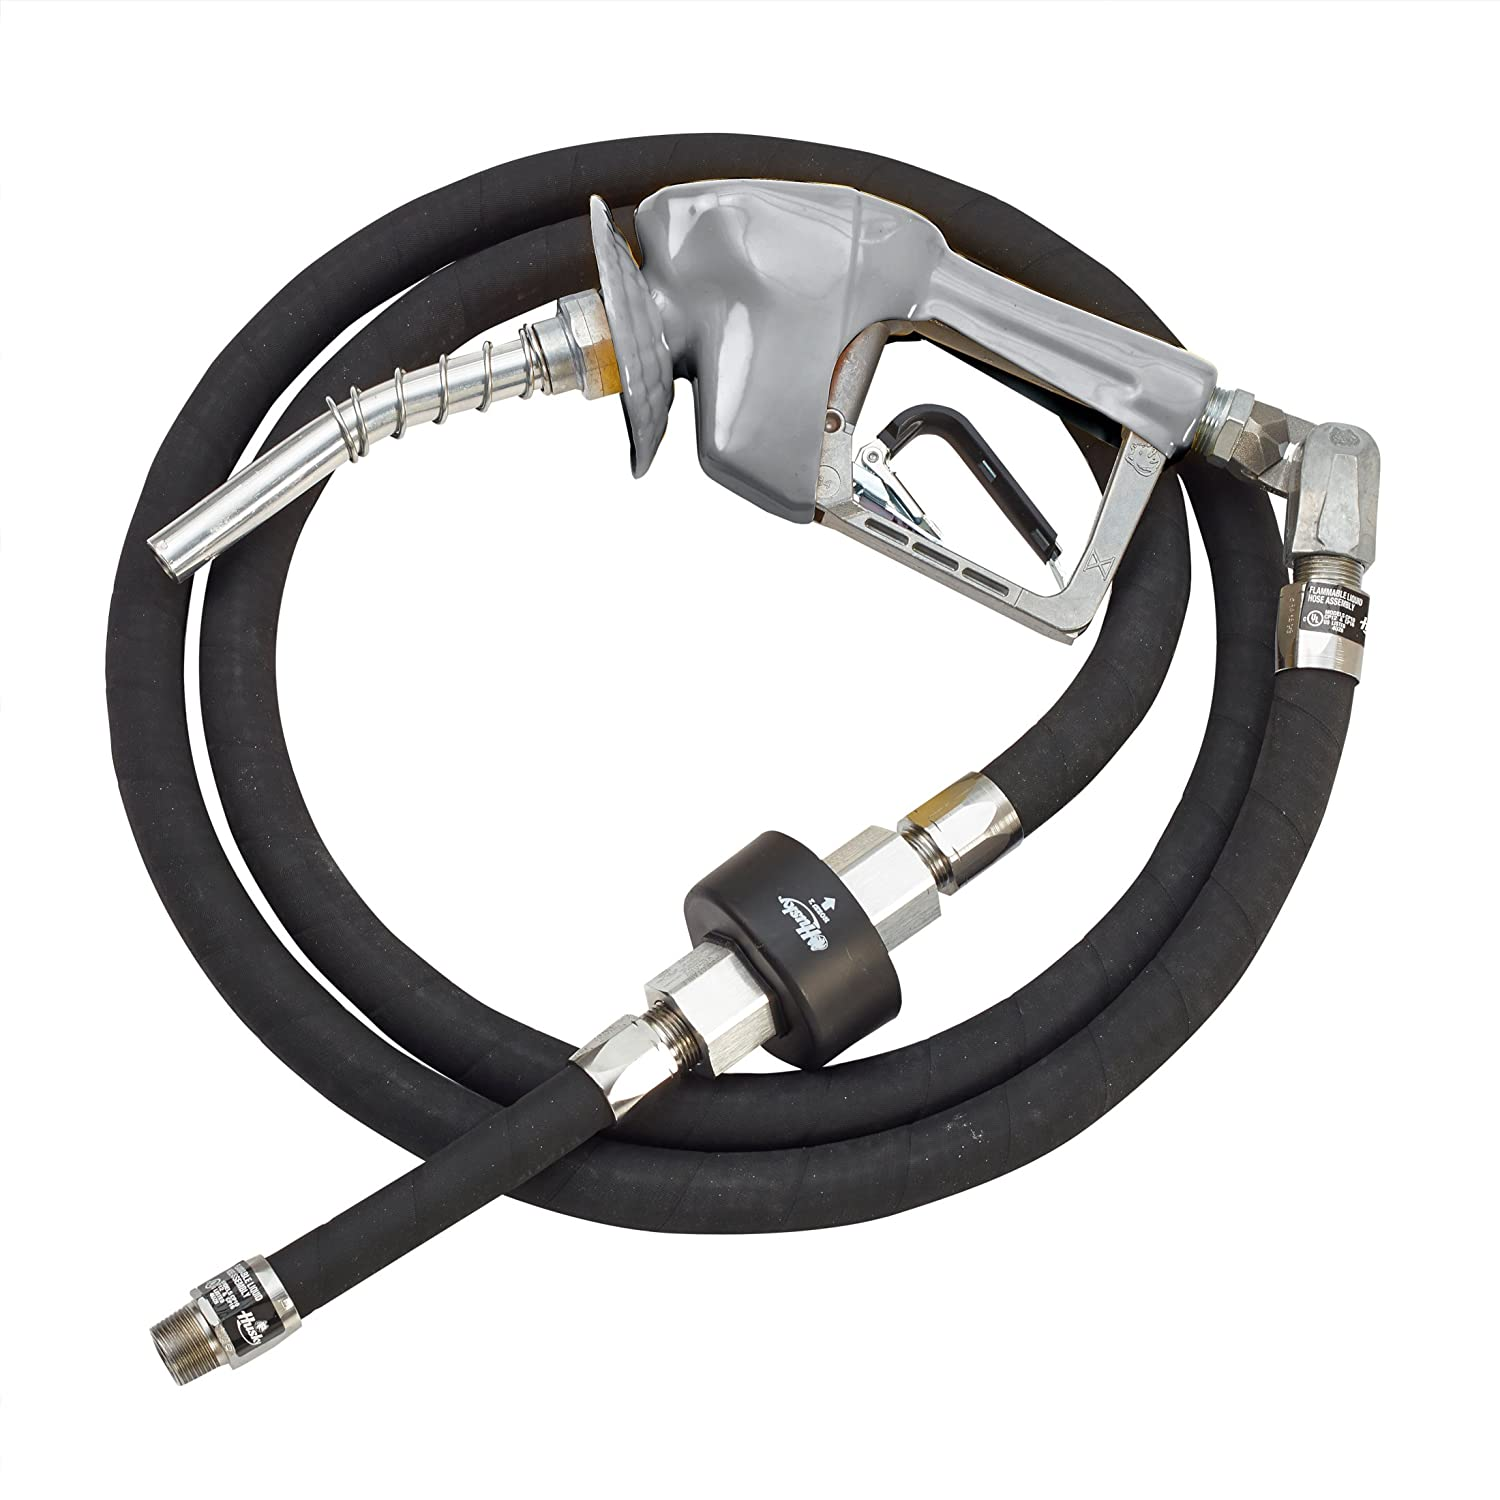 Husky 010628-09 XS Pressure Activated Unleaded Nozzle with Waffle Splash Guard and 5//8-Inch by 9-Inch Wirebraid Whip Hose